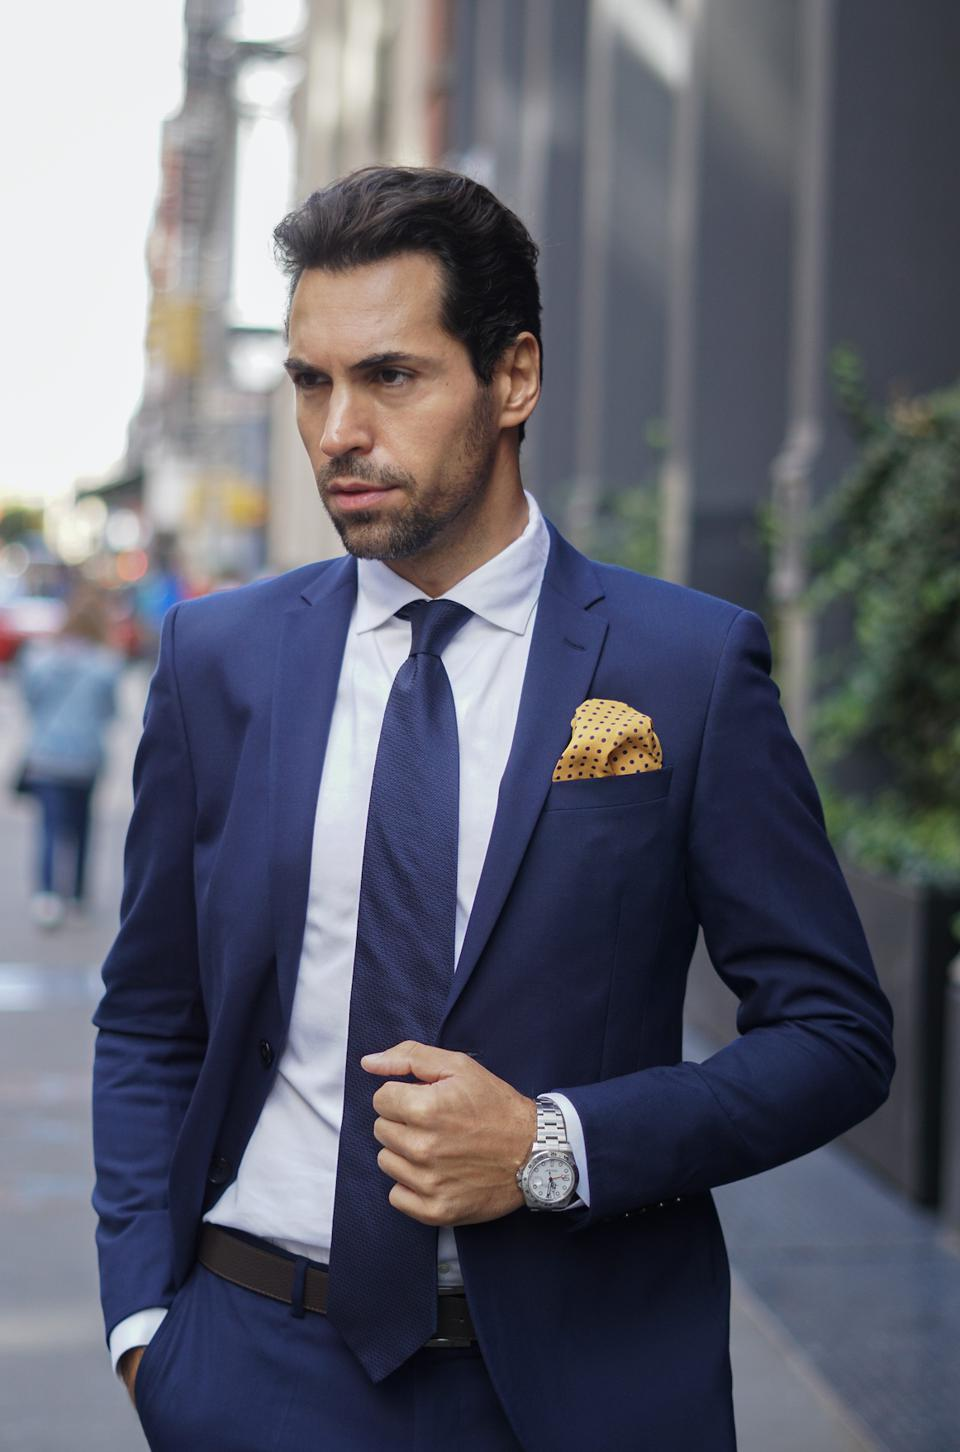 RARE CUT's patented pocket squares always keep their shape, and you can even get rid of wrinkles without an iron.